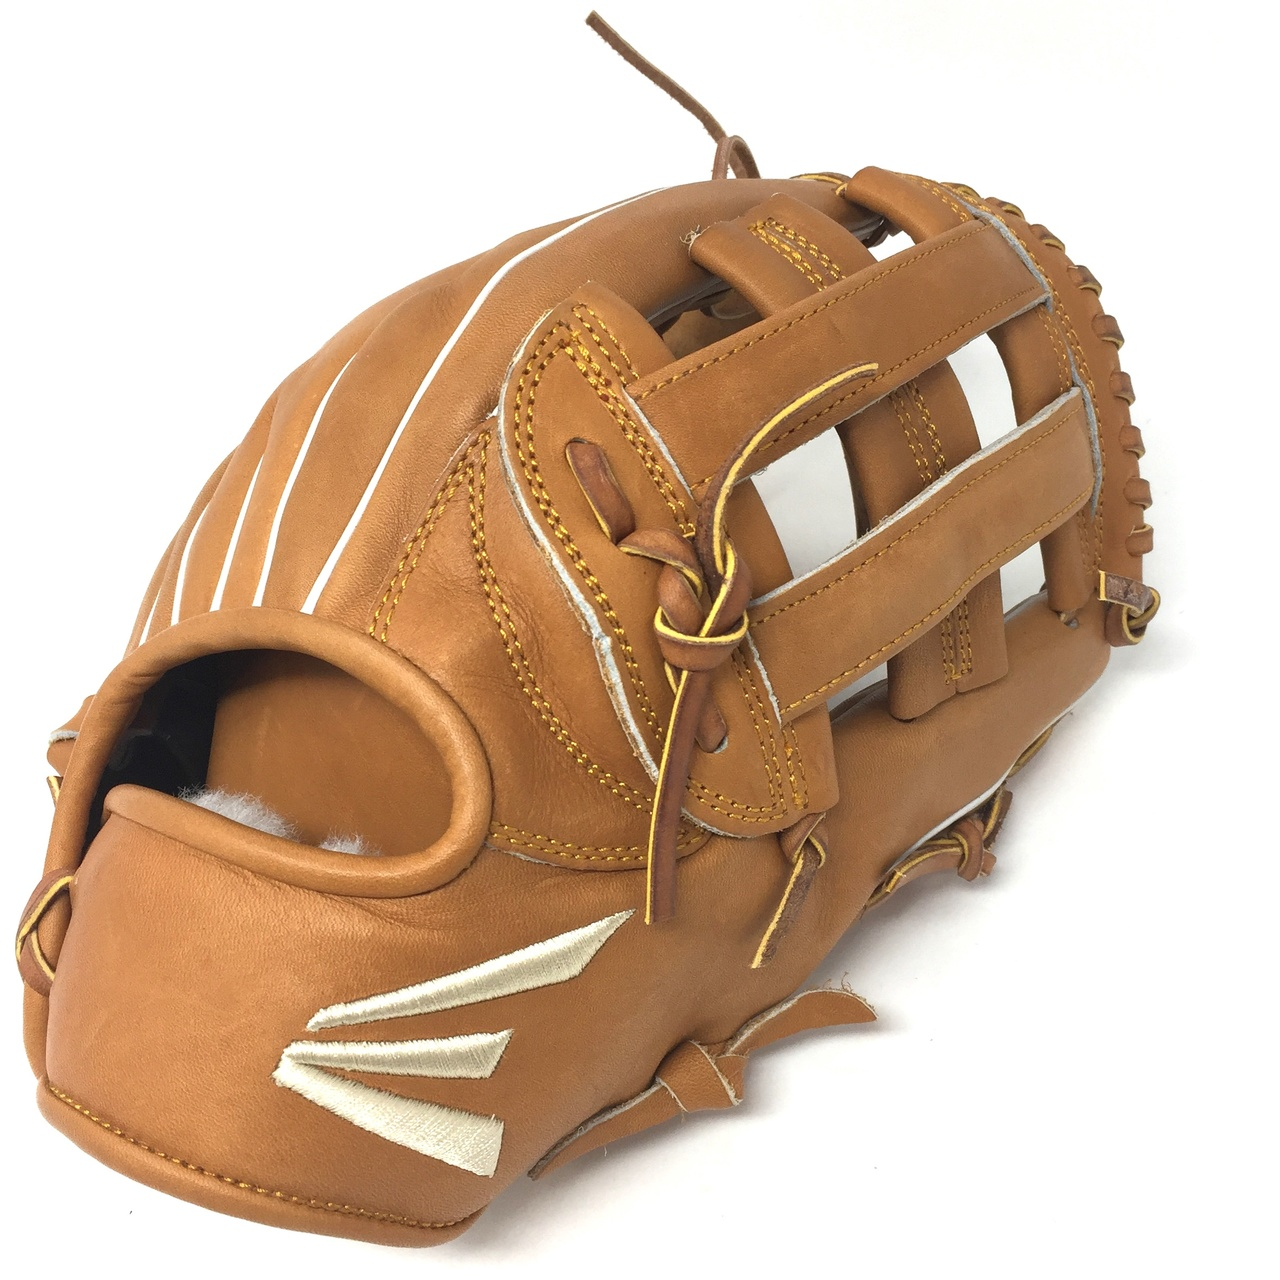 easton-small-batch-38-baseball-glove-11-75-right-hand-throw SMB38-C33-RightHandThrow  628412242353 <span>Eastons Small Batch project focuses on ball glove development using only